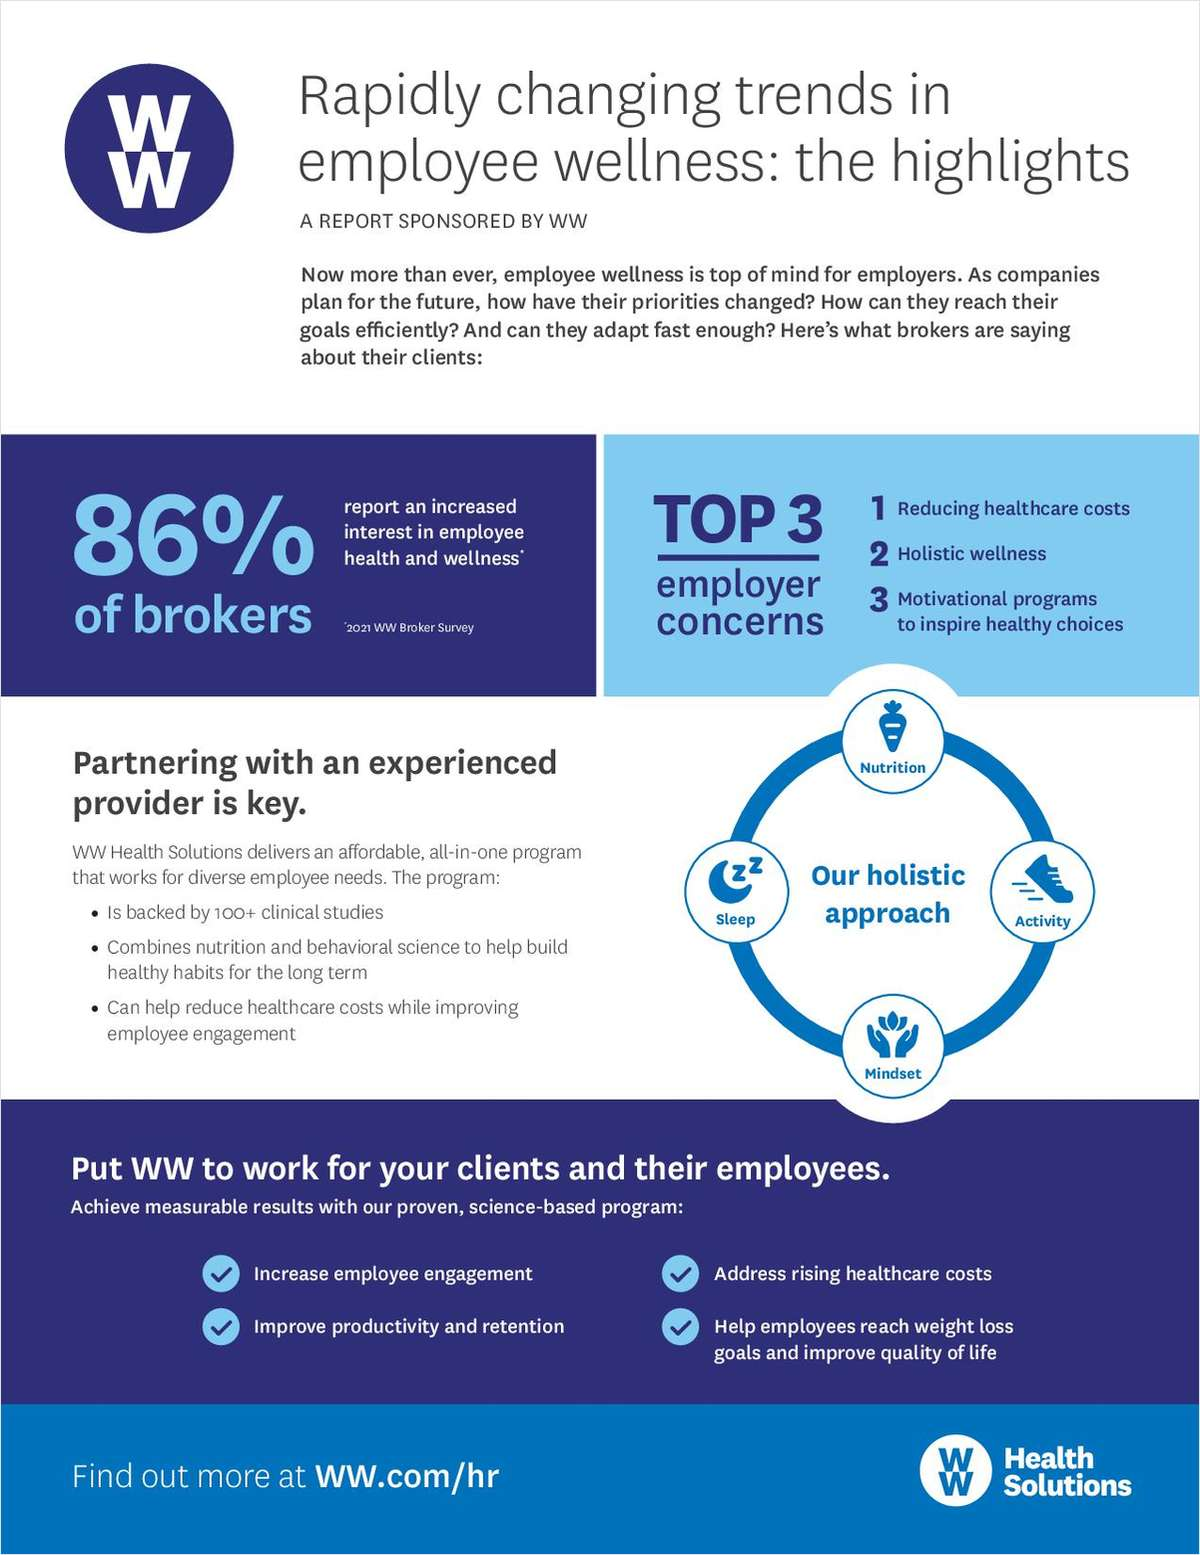 Trends in Employee Wellness: How to Address the Top 3 Concerns